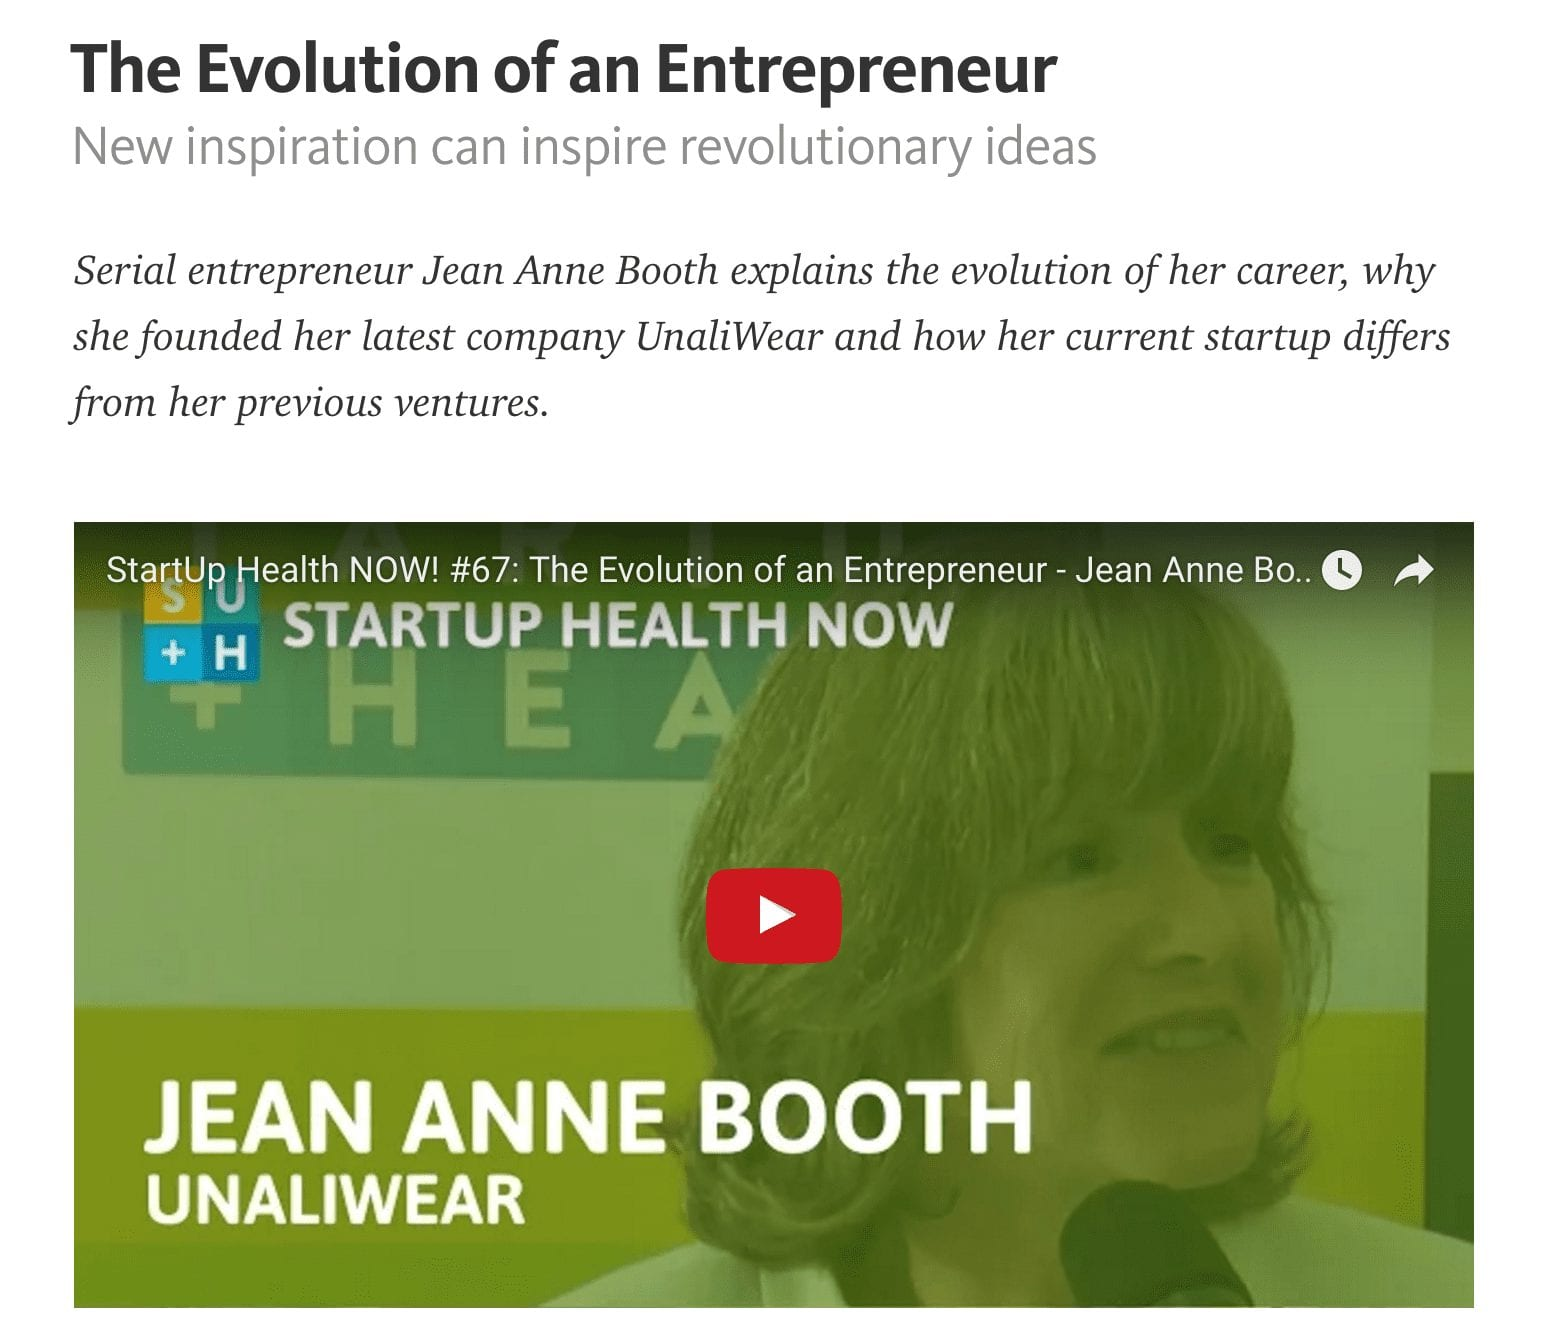 Serial entrepreneur Jean Anne Booth explains the evolution of her career, why she founded her latest company UnaliWear and how her current startup differs from her previous ventures.